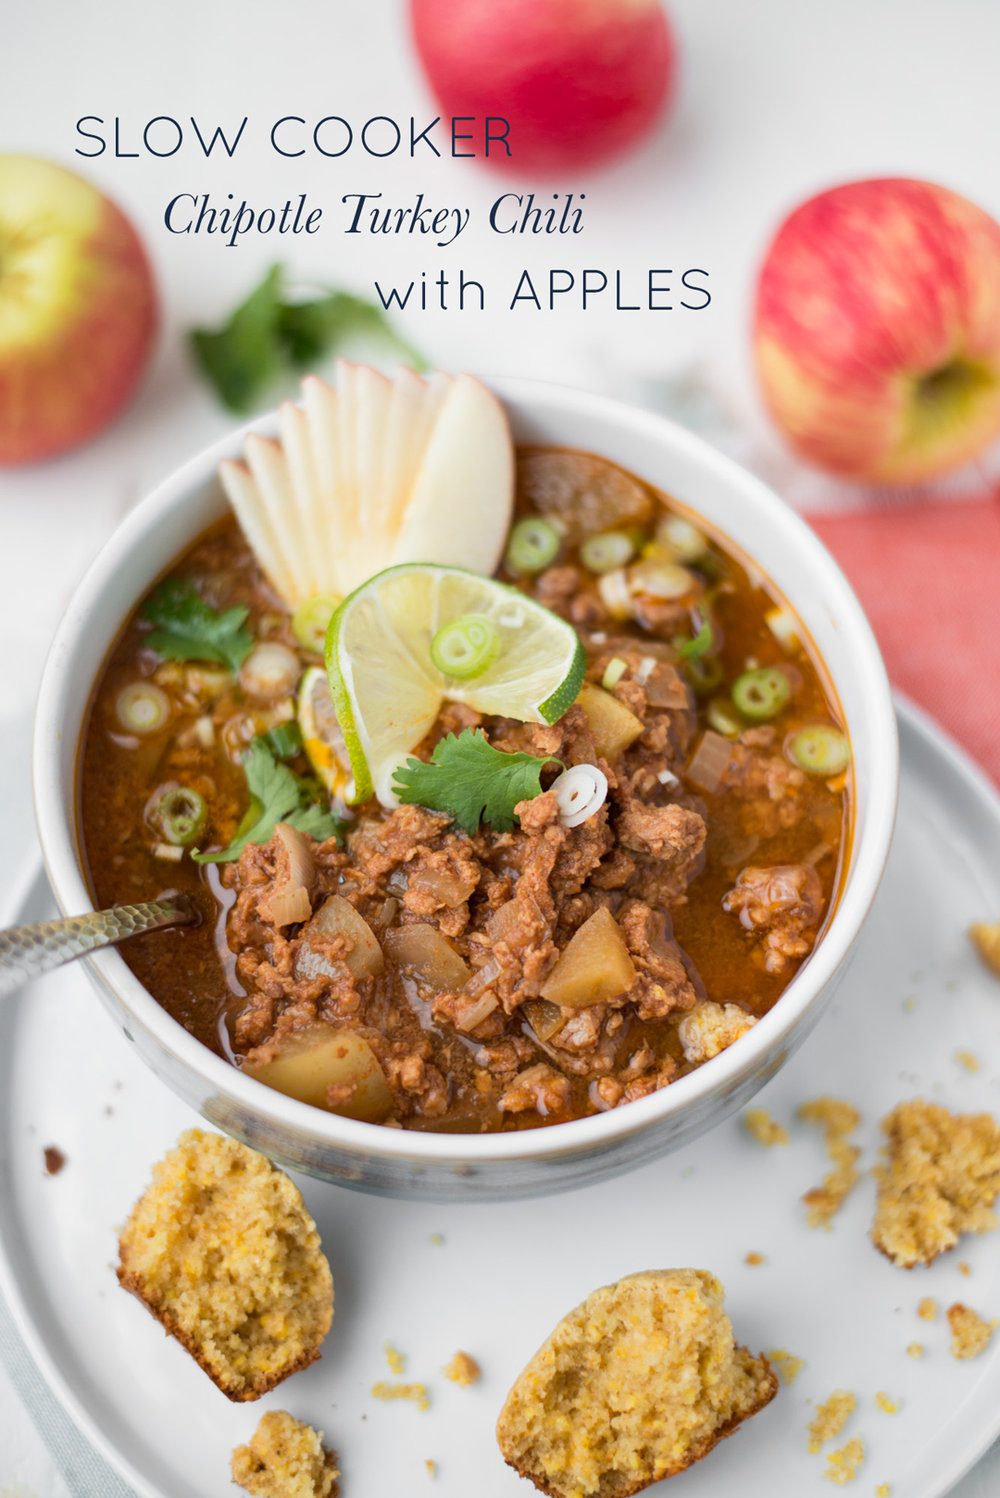 Slow Cooker Chipotle Turkey Apple Chili (+ 30-Minute Stovetop Option) whole30, crockpot, grain-free, gluten-free, dairy-free